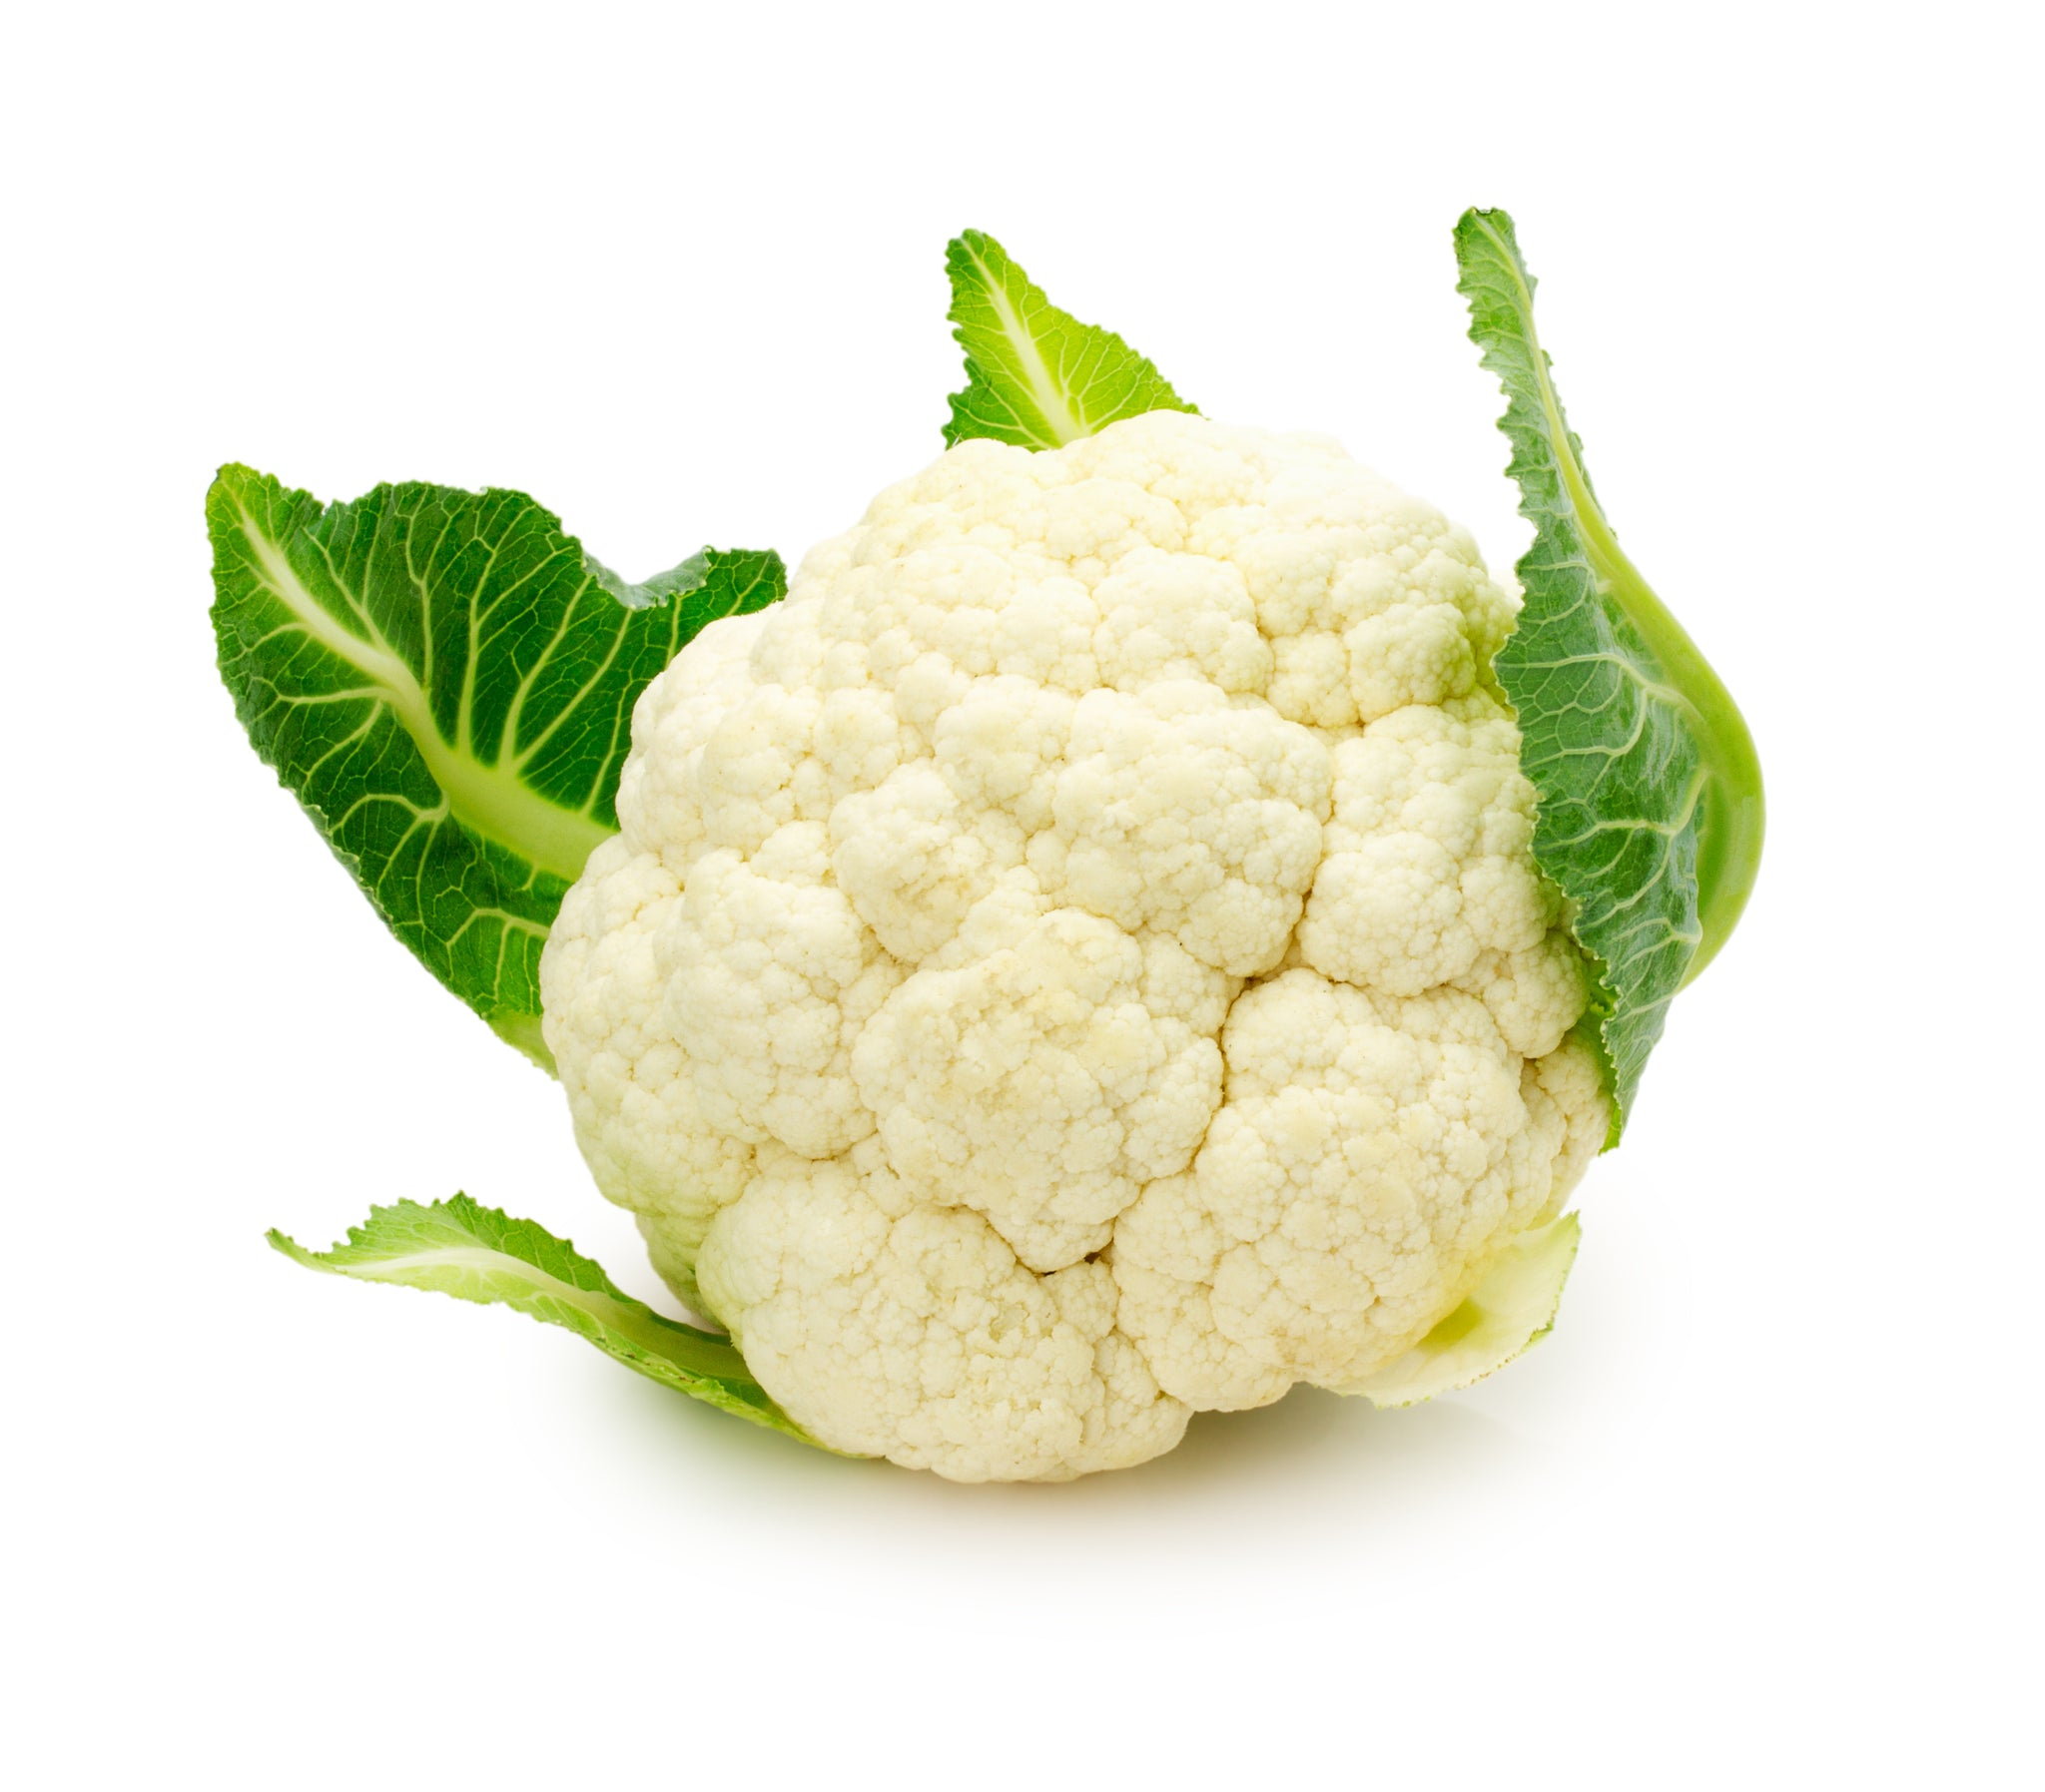 aga>Cauliflower (one)